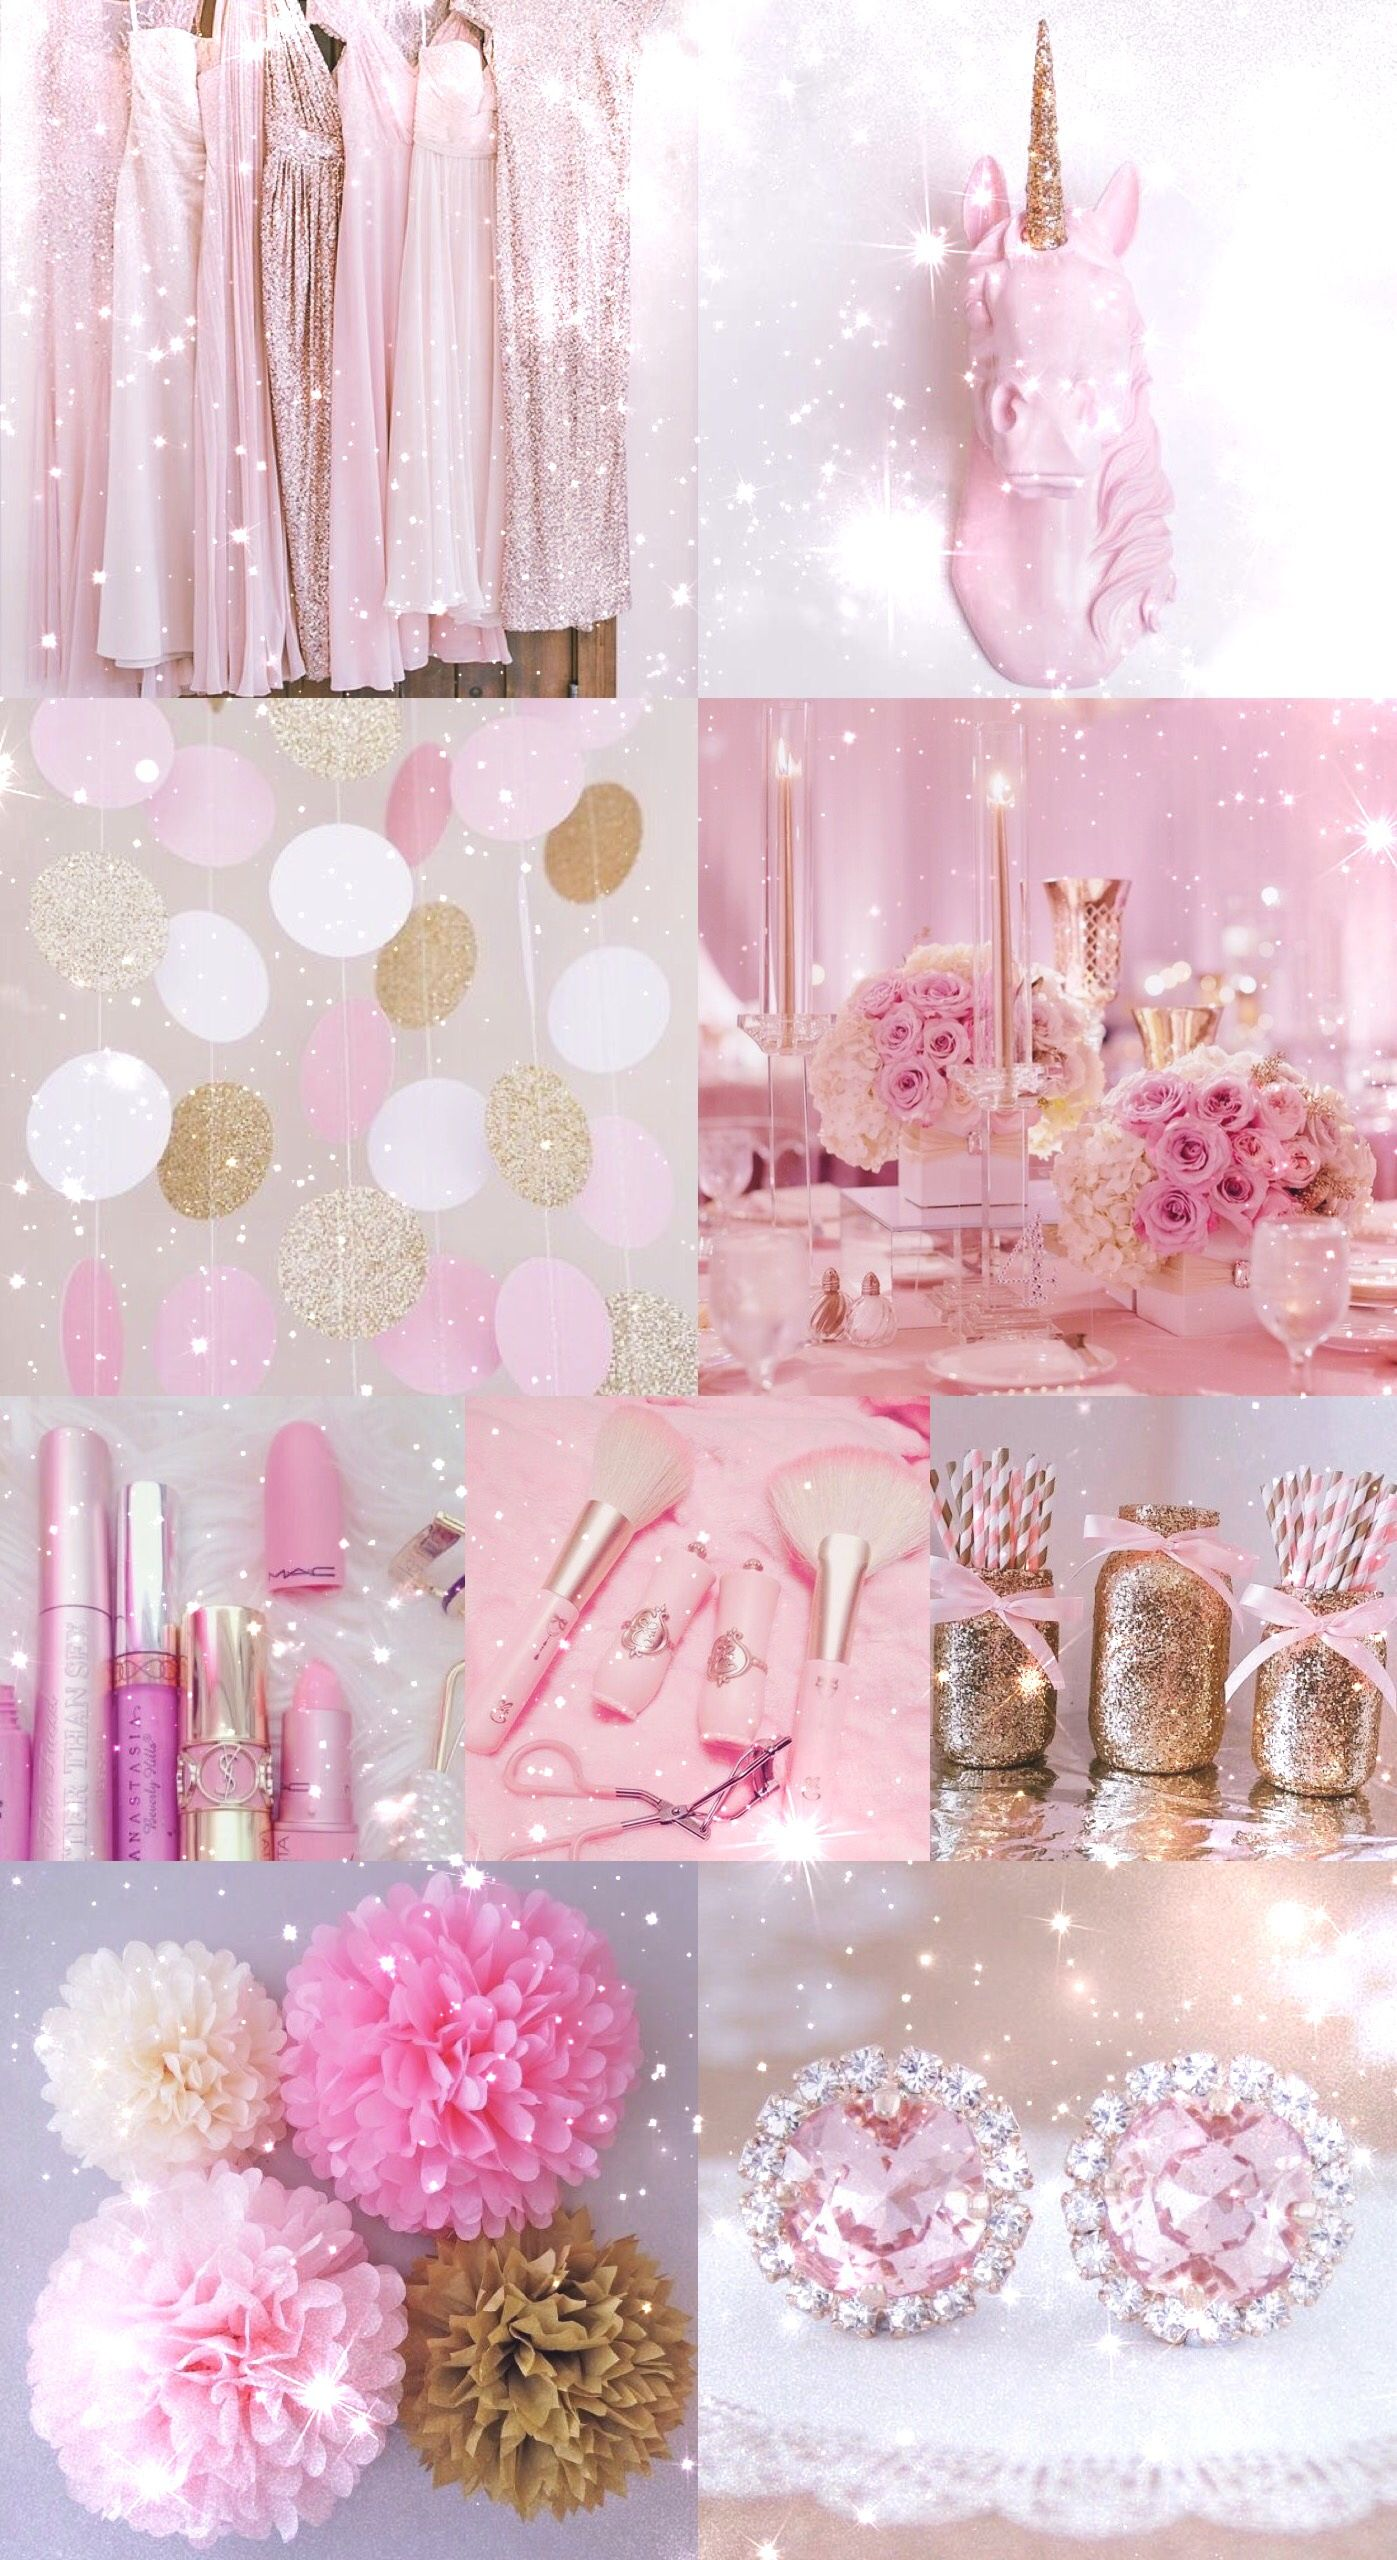 pink, gold, wallpaper, background, hd, iPhone, glitter